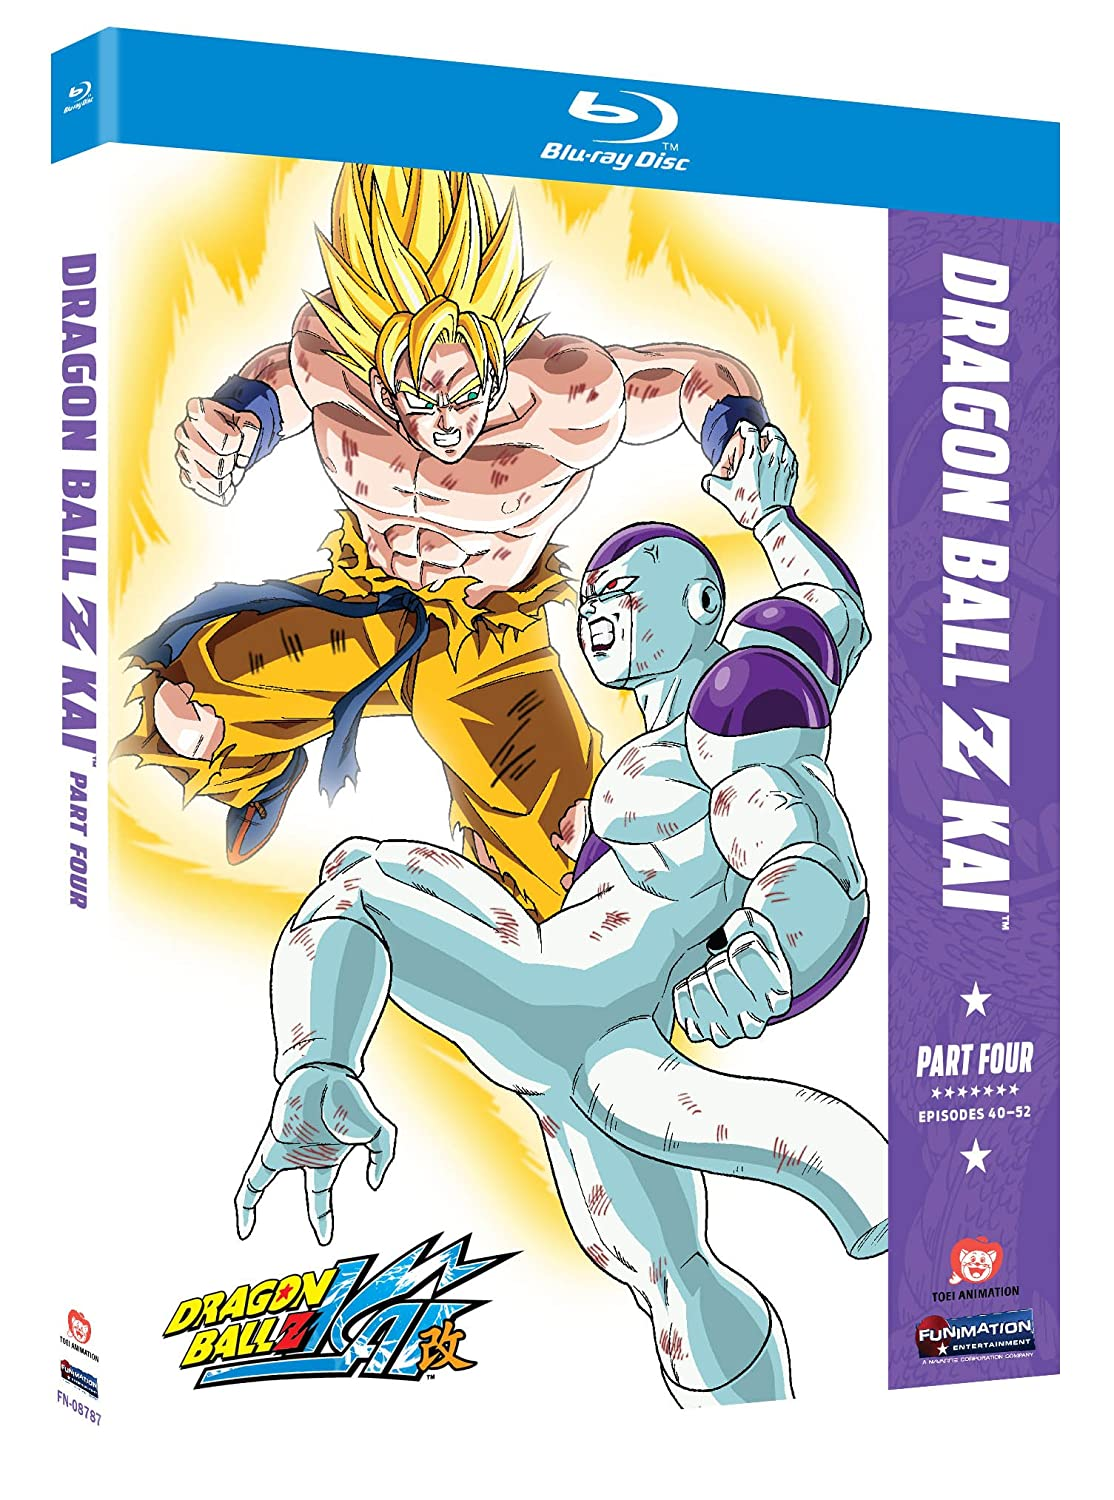 Dragon Ball Z Kai Part Four Blu Ray Colleen Clinkenbeard Sean Schemmel Monica Rial Christopher R Sabat Movies Tv